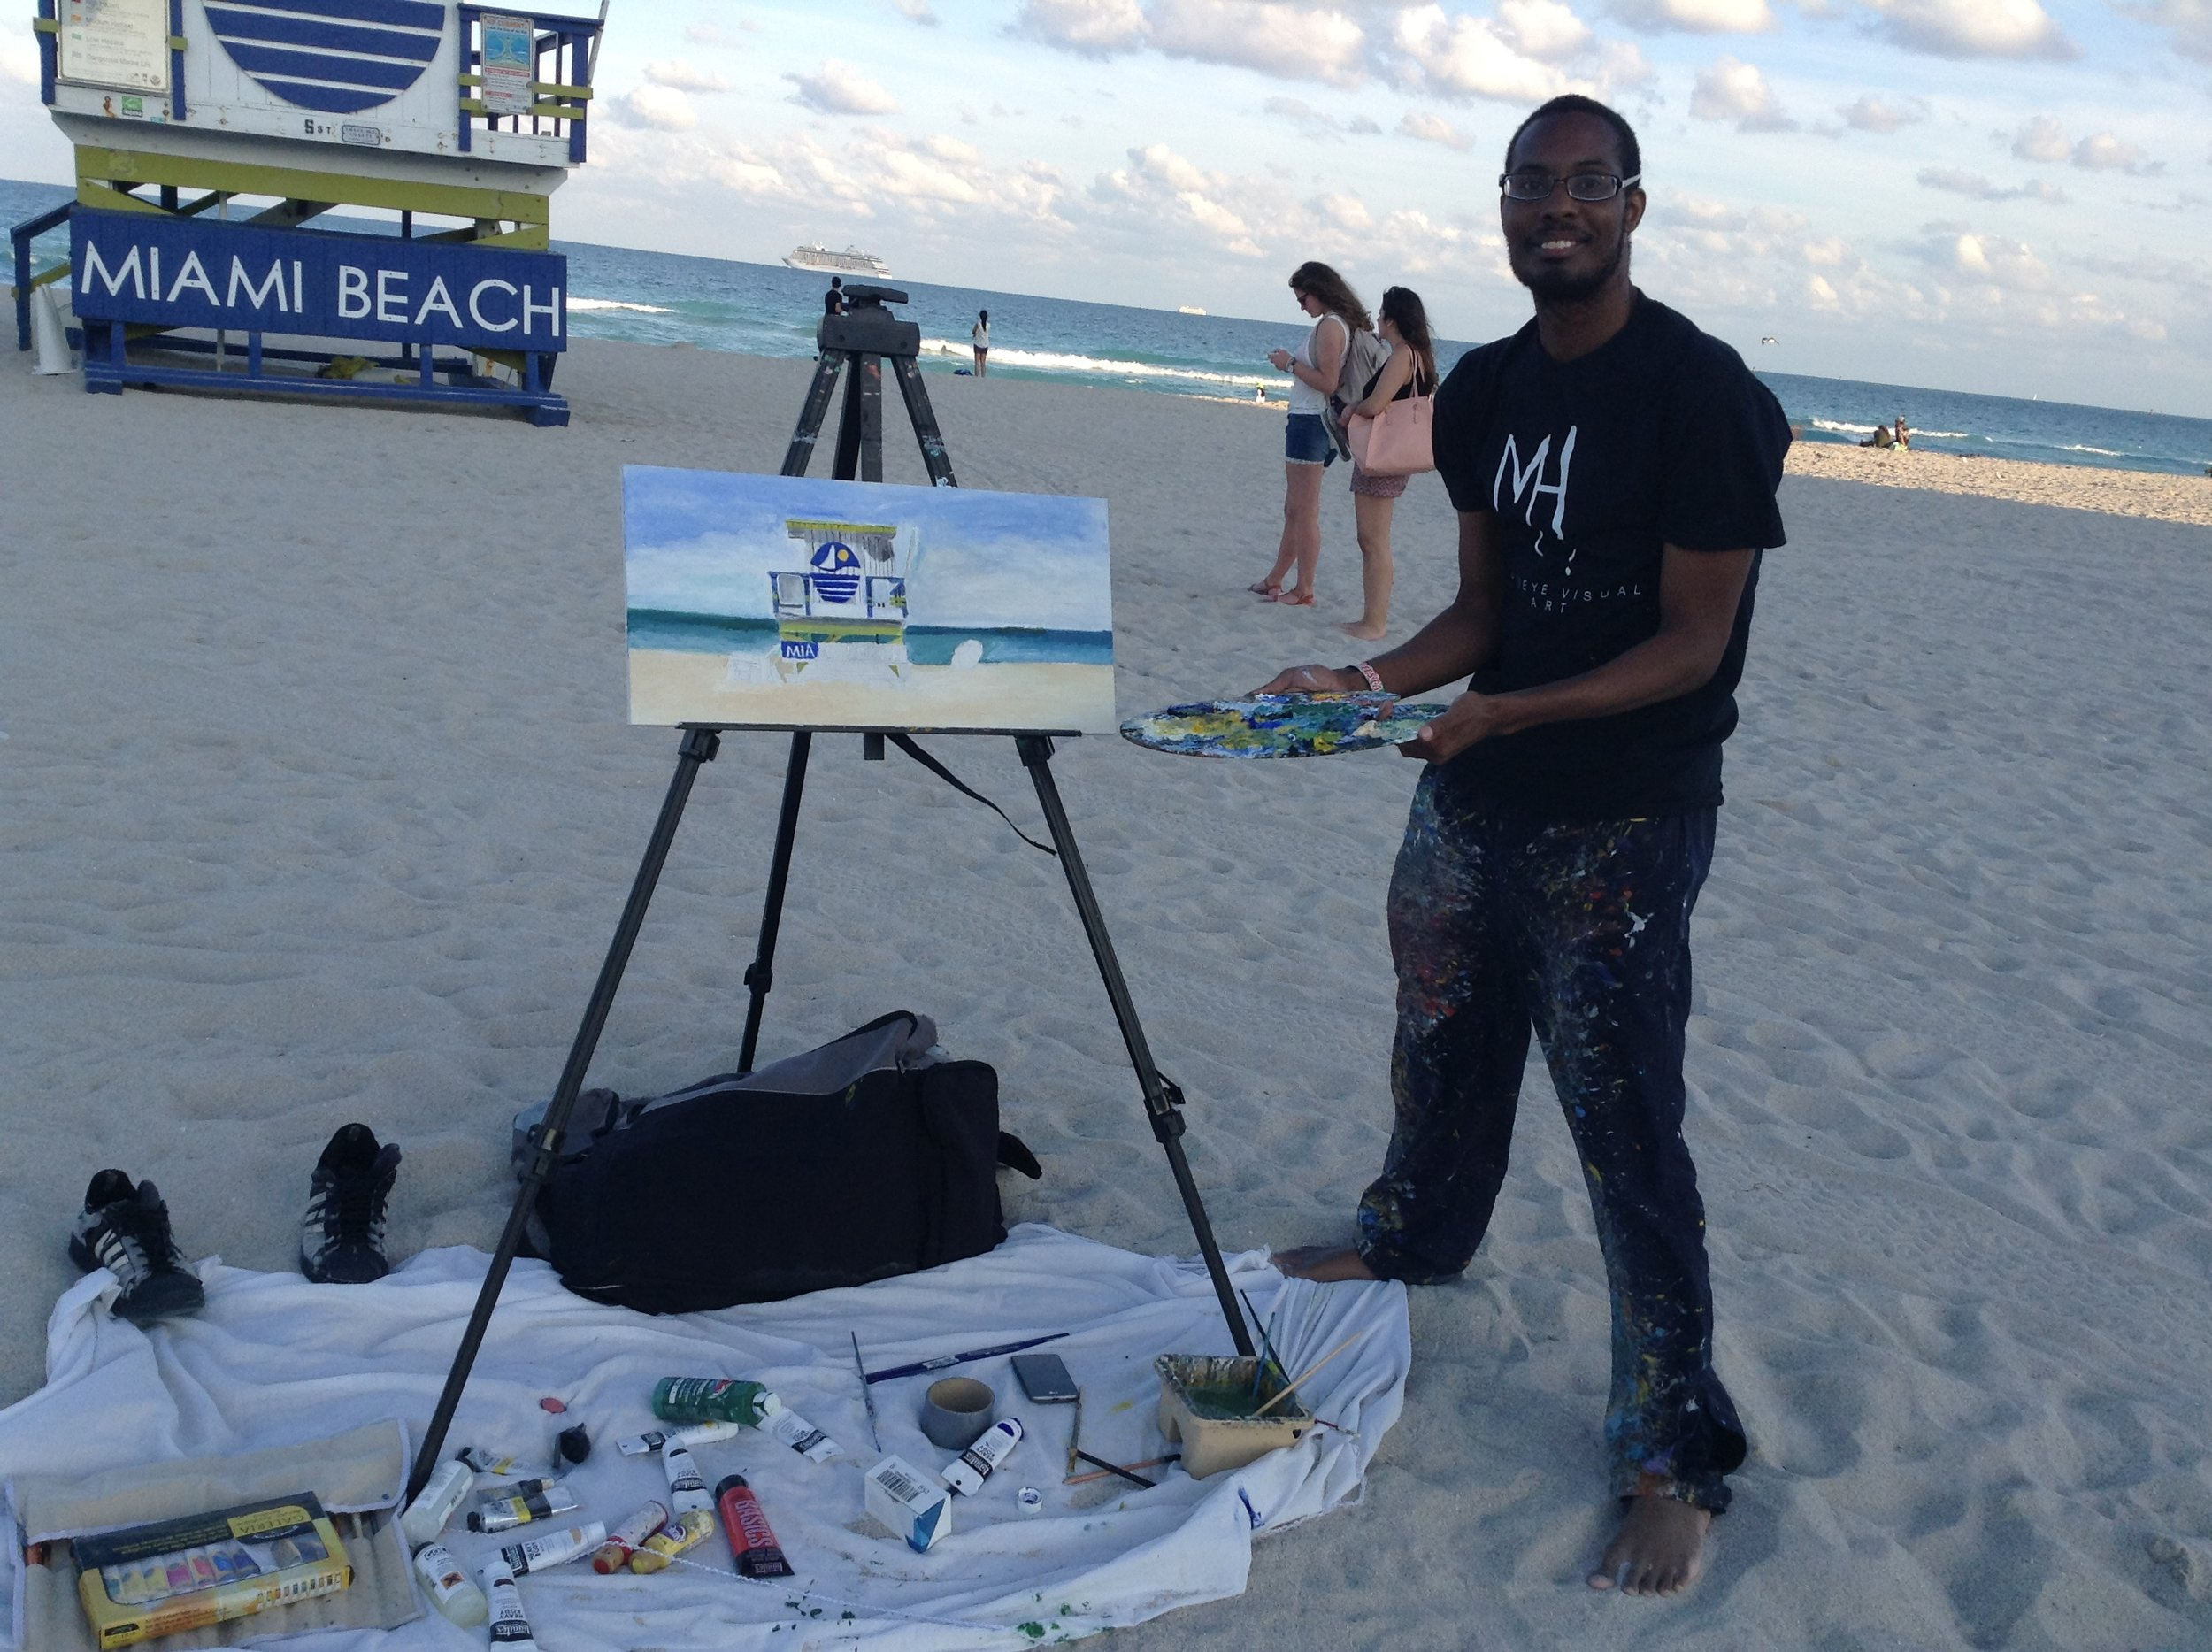 Me doing a Live Art painting of the 5th Street Lifeguard Tower on Miami Beach at Miami, FL this past weekend.